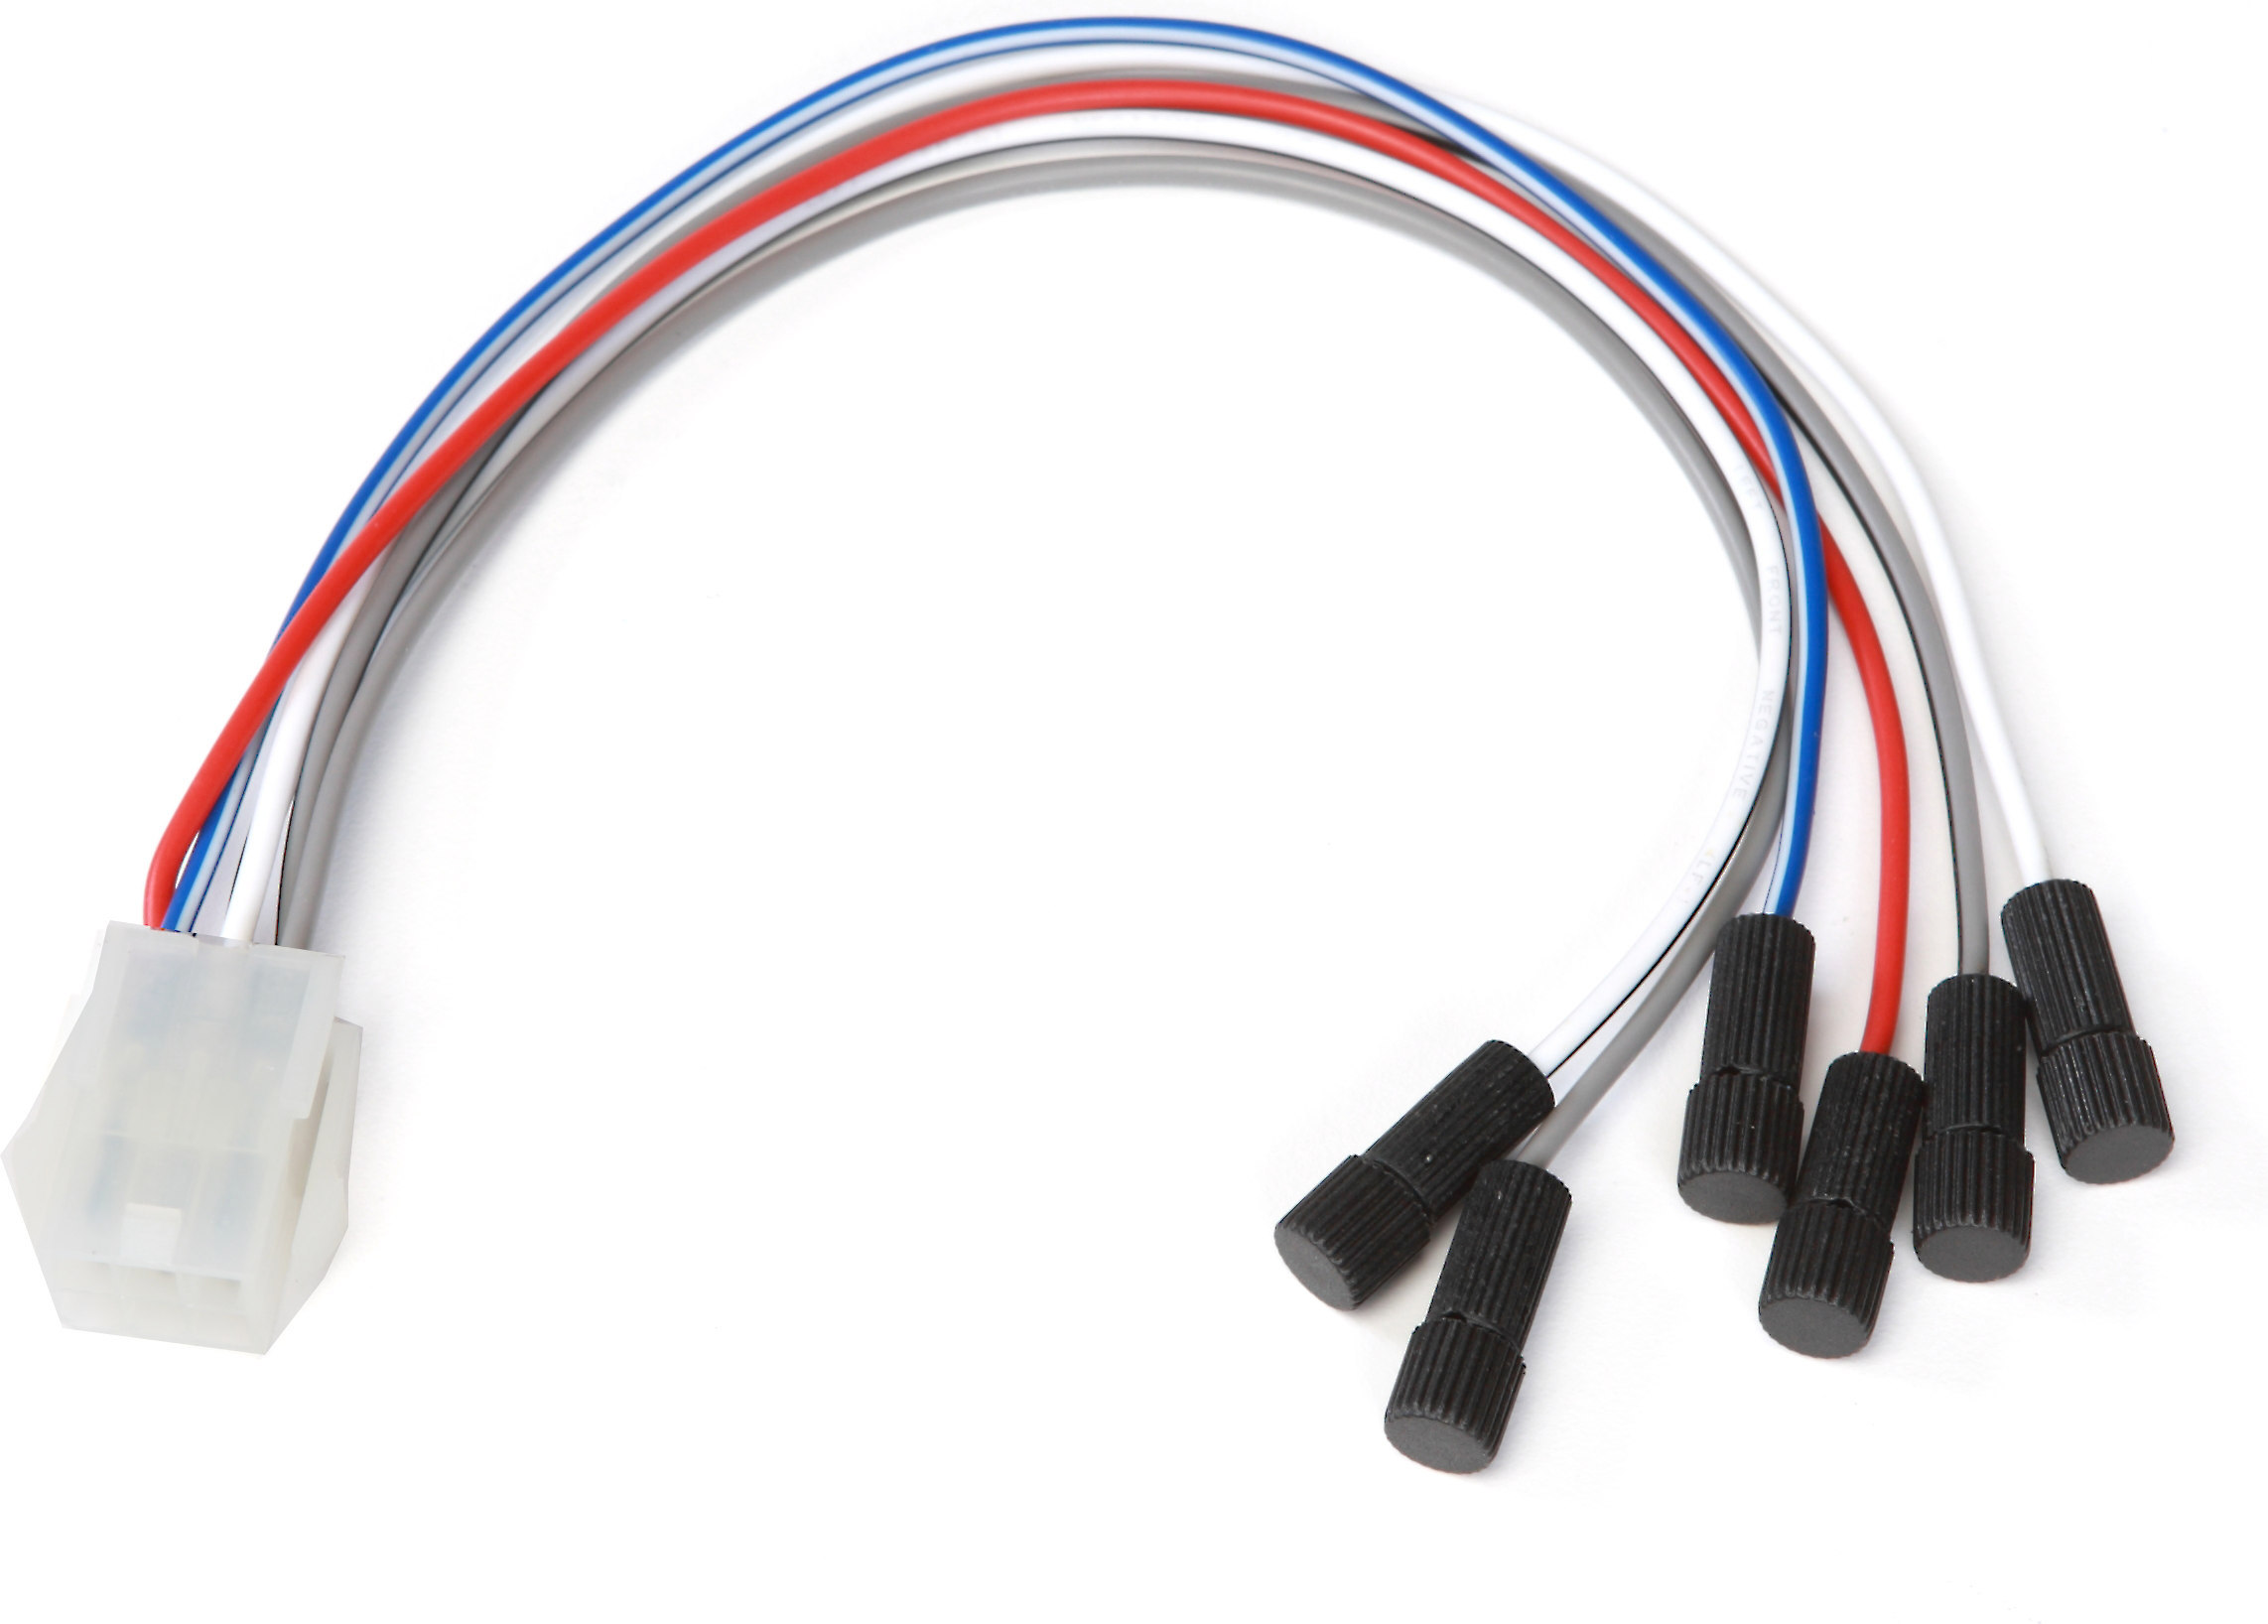 Bazooka F.A.S.T.-9999 Universal connection harness for powered Bass Tubes  at CrutchfieldCrutchfield